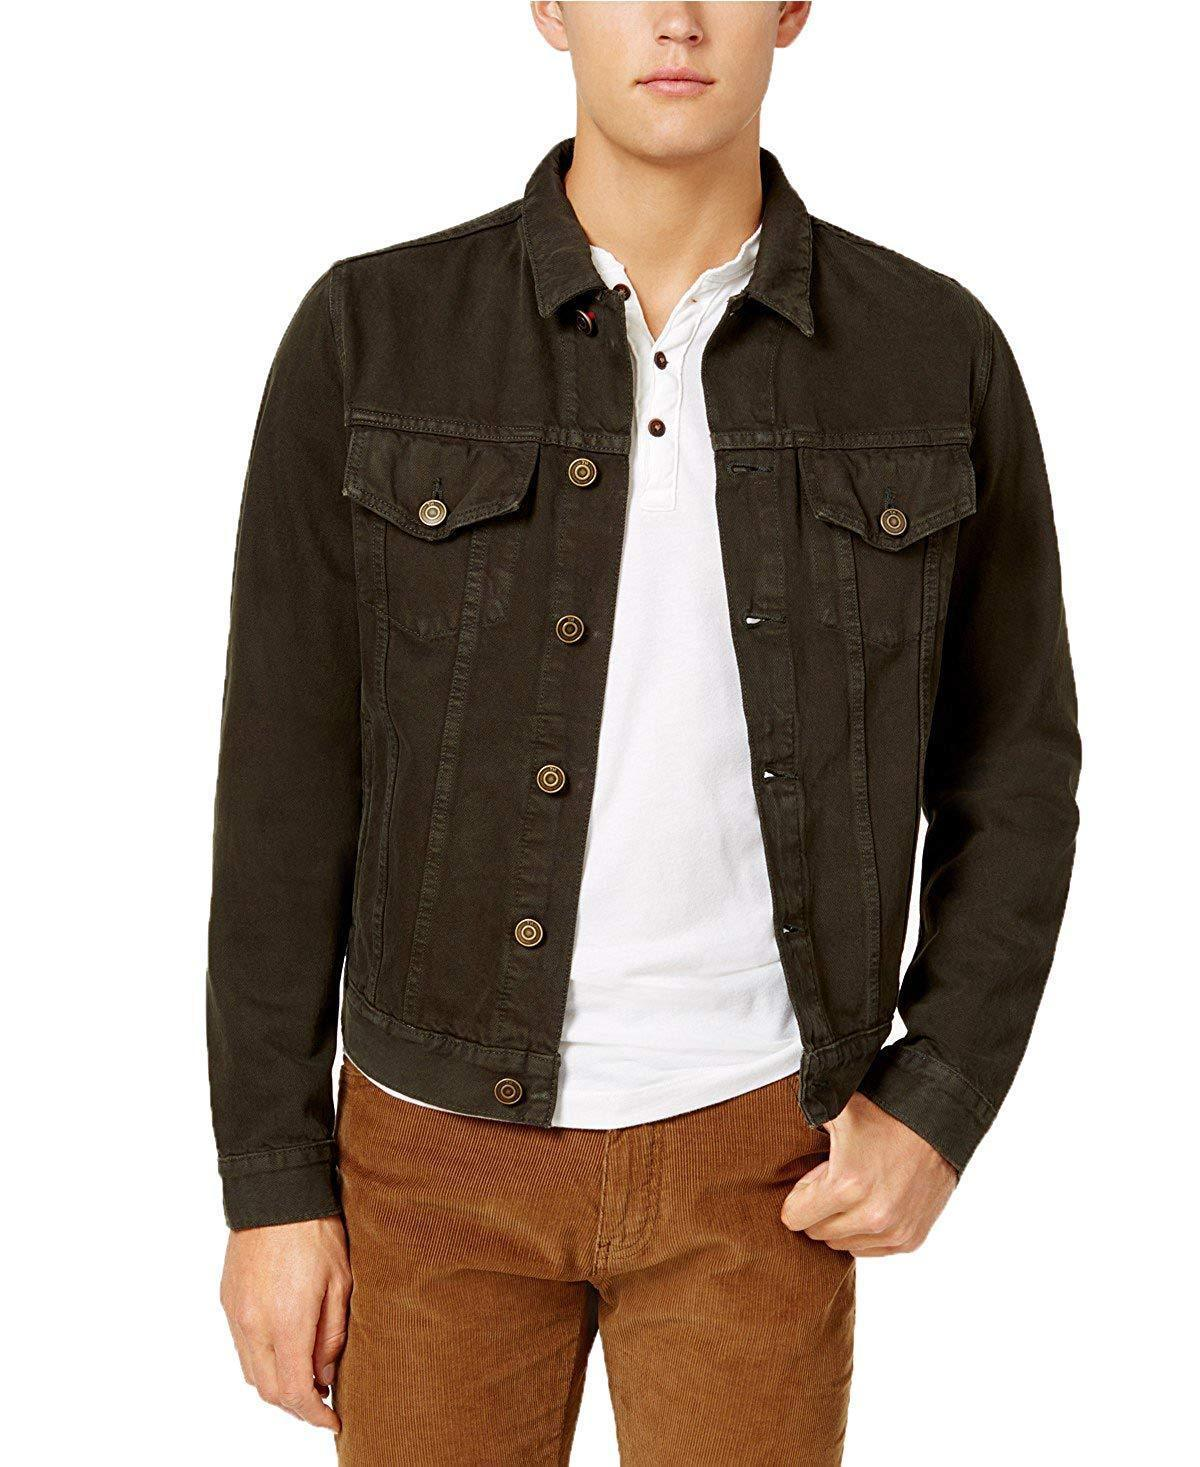 Primary image for Tommy Hilfiger Men's Garment Dyed Denim Jacket (XL, Dark Brown) 3281-4